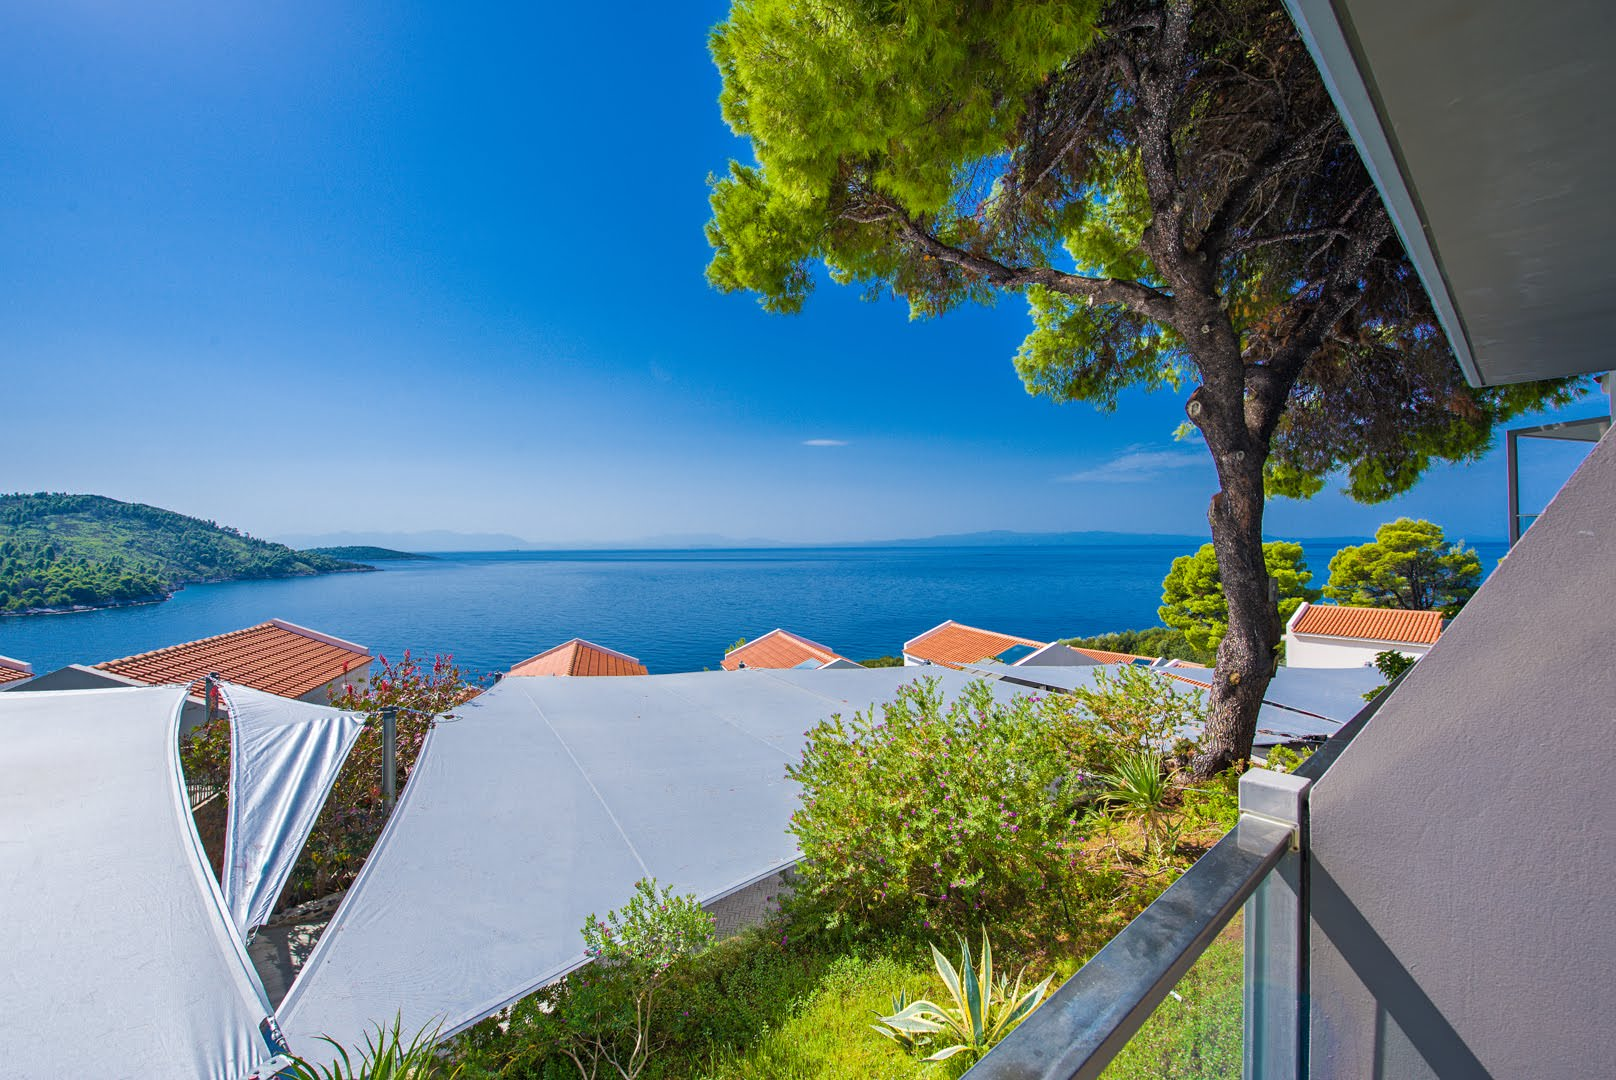 skopelos hotels adrina resort double room s0.3